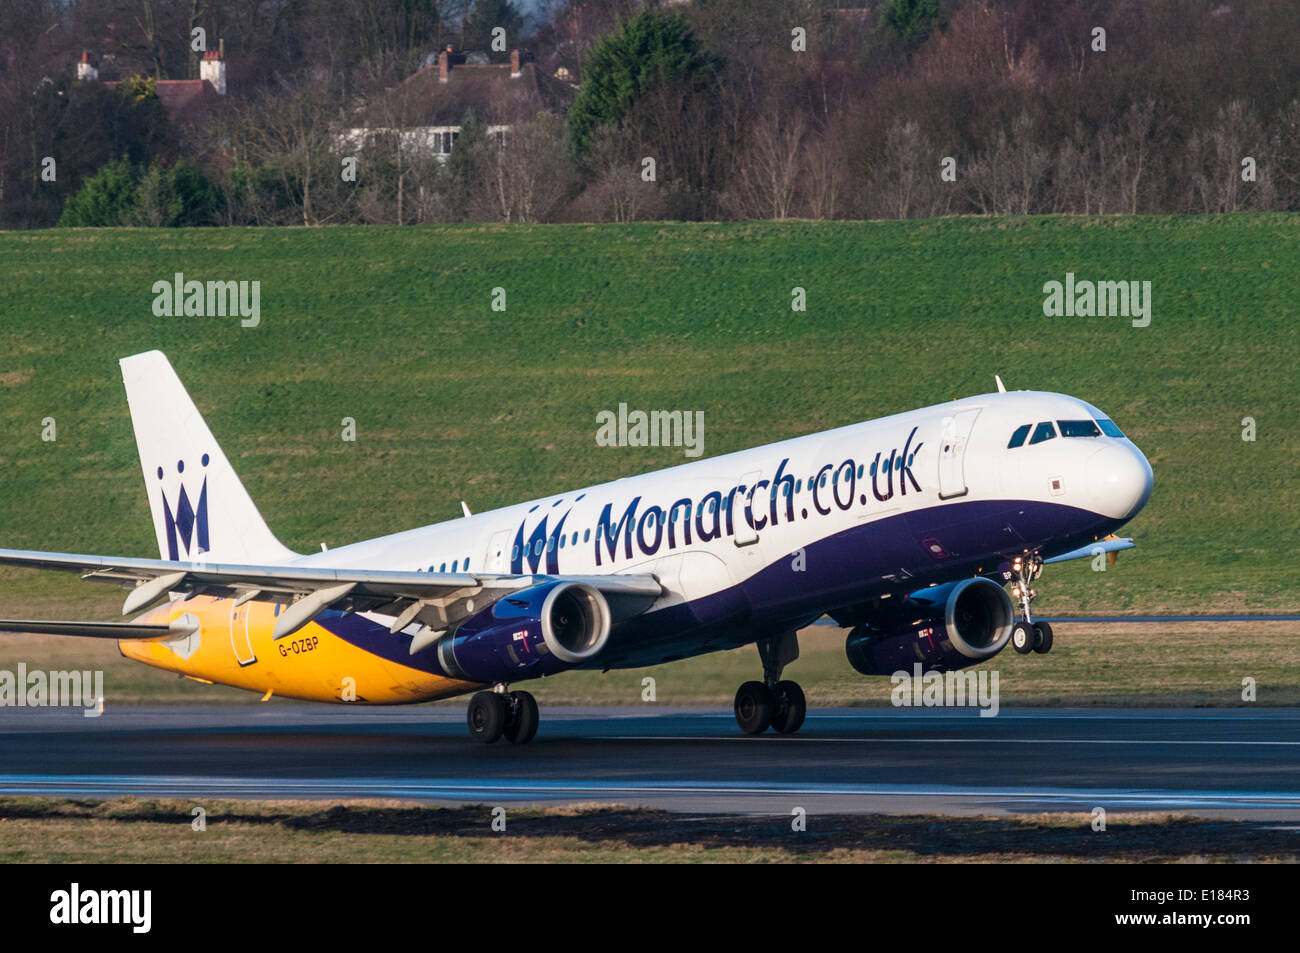 Airbus A321 of Monarch Airlines taking off from Birmingham International Airport Stock Photo